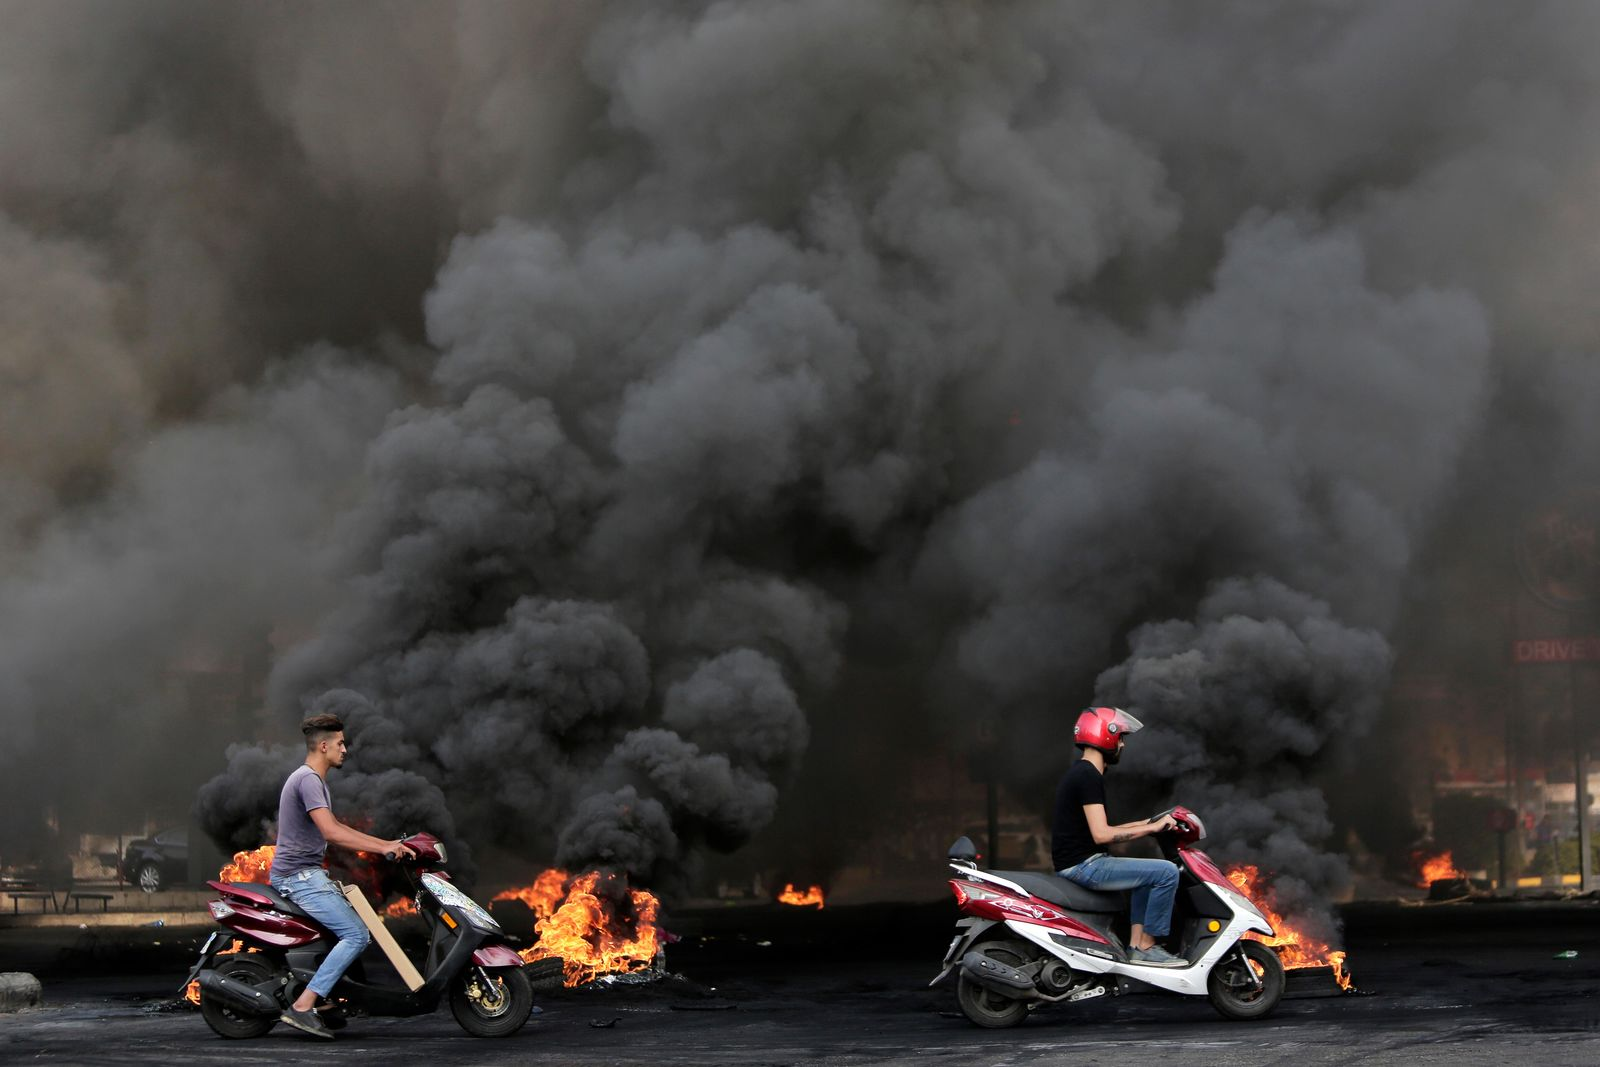 Men on scooters pass tires that were set on fire to block a road during a protest against government's plans to impose new taxes in Beirut, Lebanon, Friday, Oct. 18, 2019. (AP Photo/Hassan Ammar)